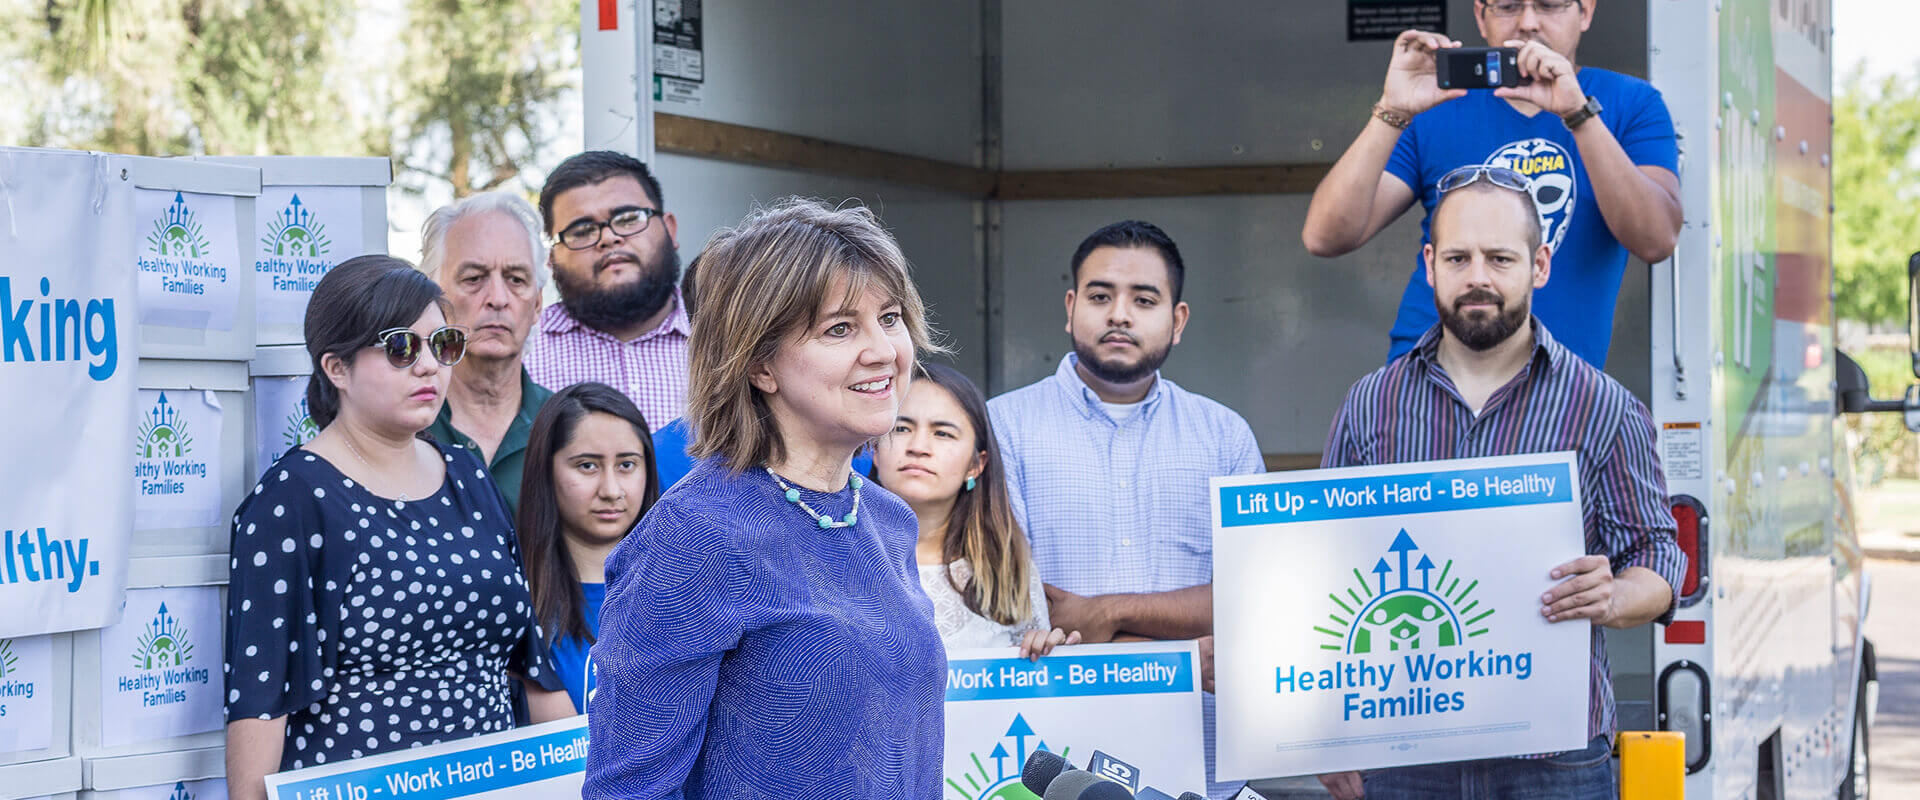 Brand Stories from Javelina-Prop 206 Arizona Healthy Working Families Coalition Speaks Out